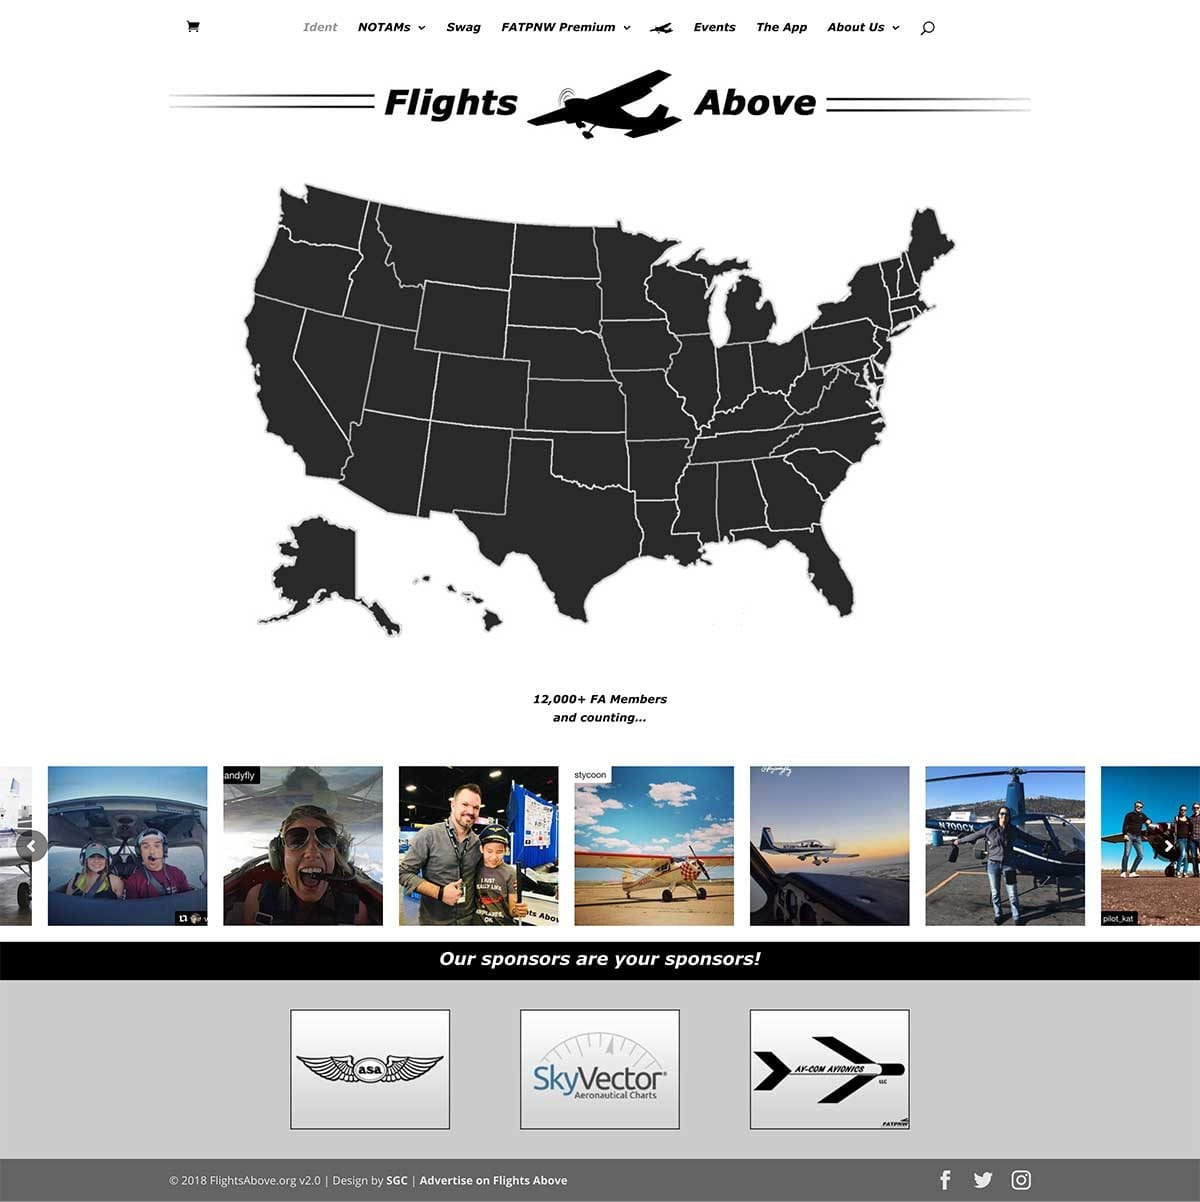 FlightsAbove.org newly launched website update